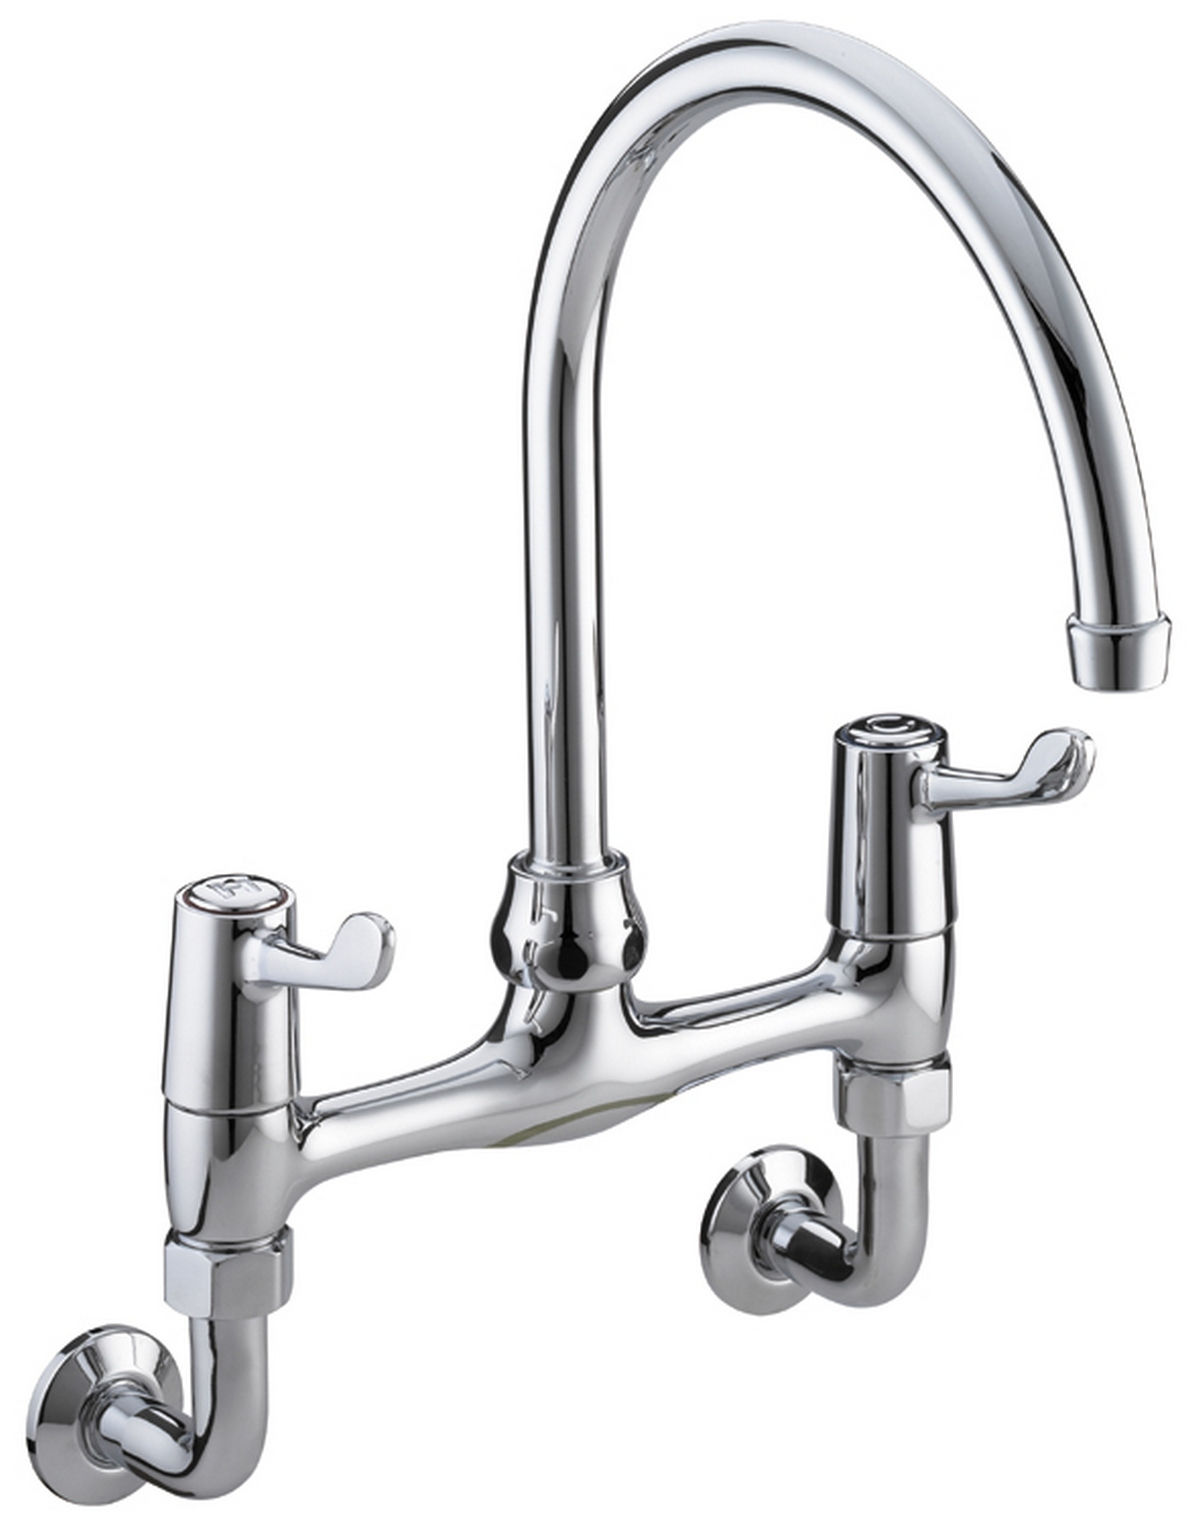 Bristan | Value | VAL WMBRSM C CD | Kitchen Sink Mixer